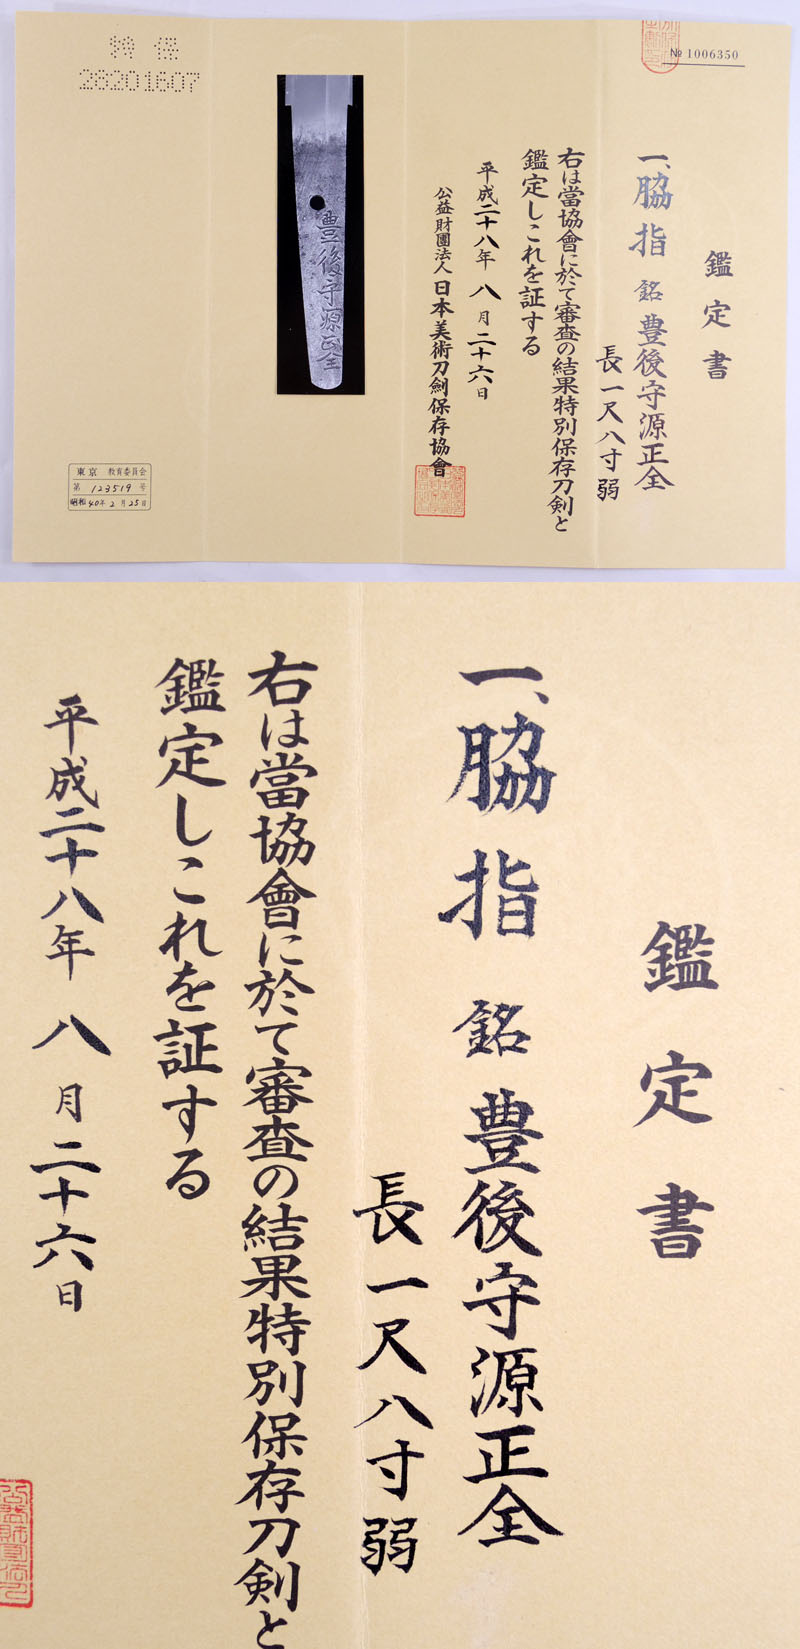 豊後守源正全 Picture of Certificate